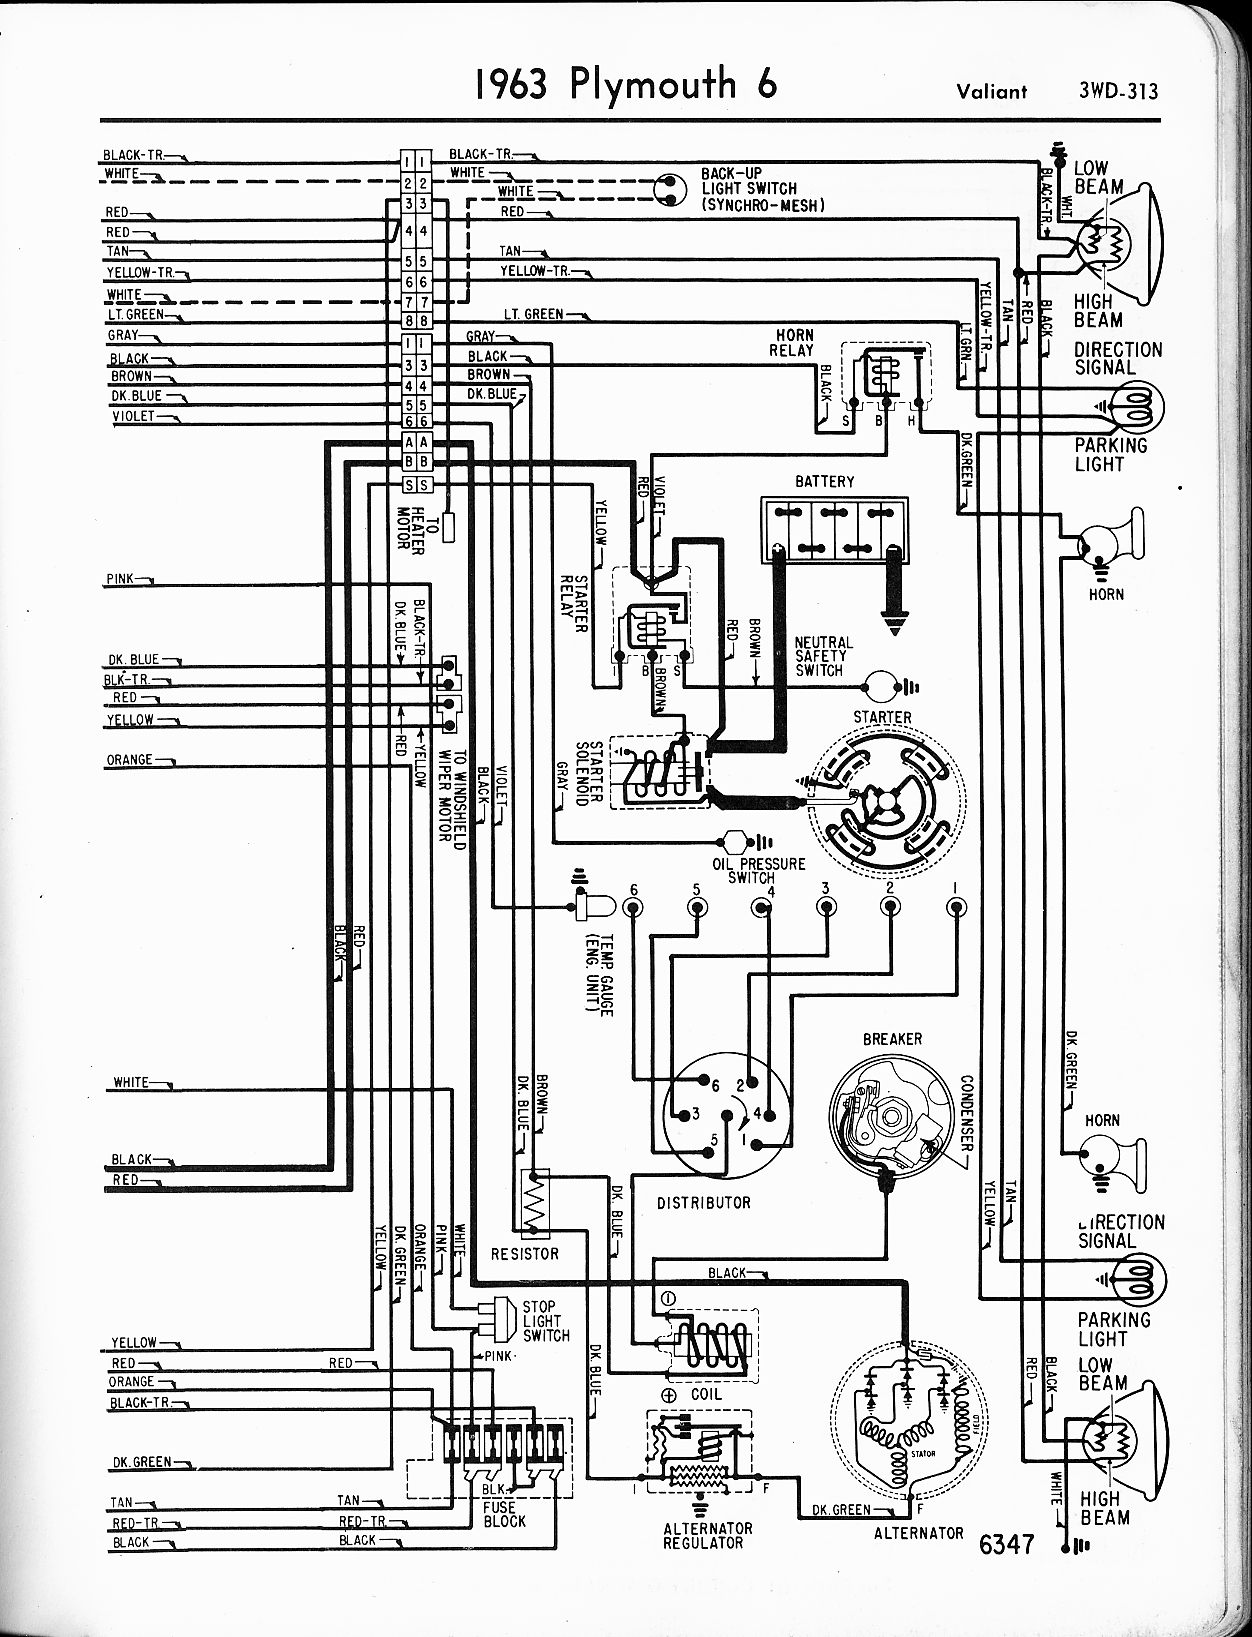 DIAGRAM] 73 Roadrunner Wiring Diagram FULL Version HD Quality Wiring Diagram  - ORBITALDIAGRAMS.SAINTMIHIEL-TOURISME.FRSaintmihiel-tourisme.fr